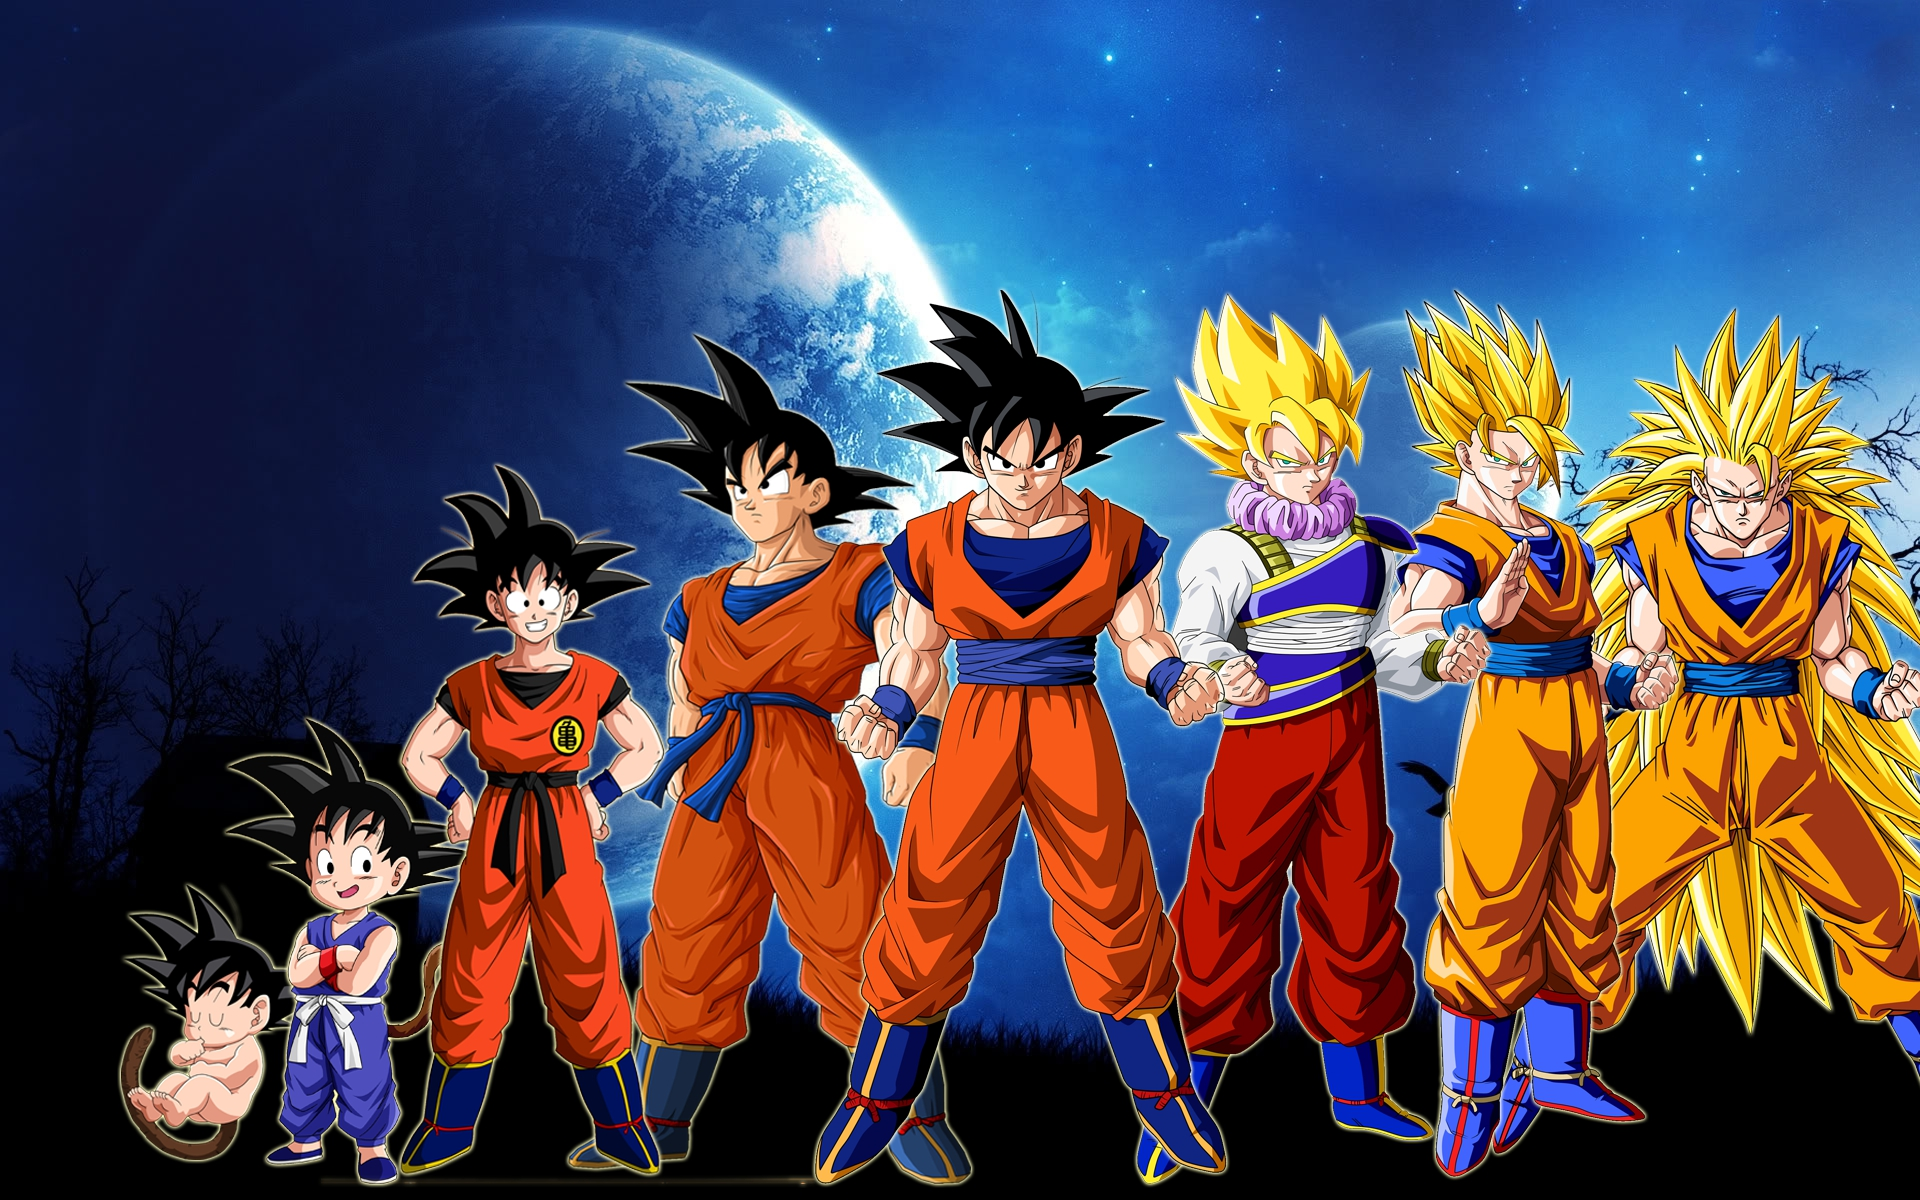 Dragon ball z goku wallpapers high quality download free - Images dragon ball z ...